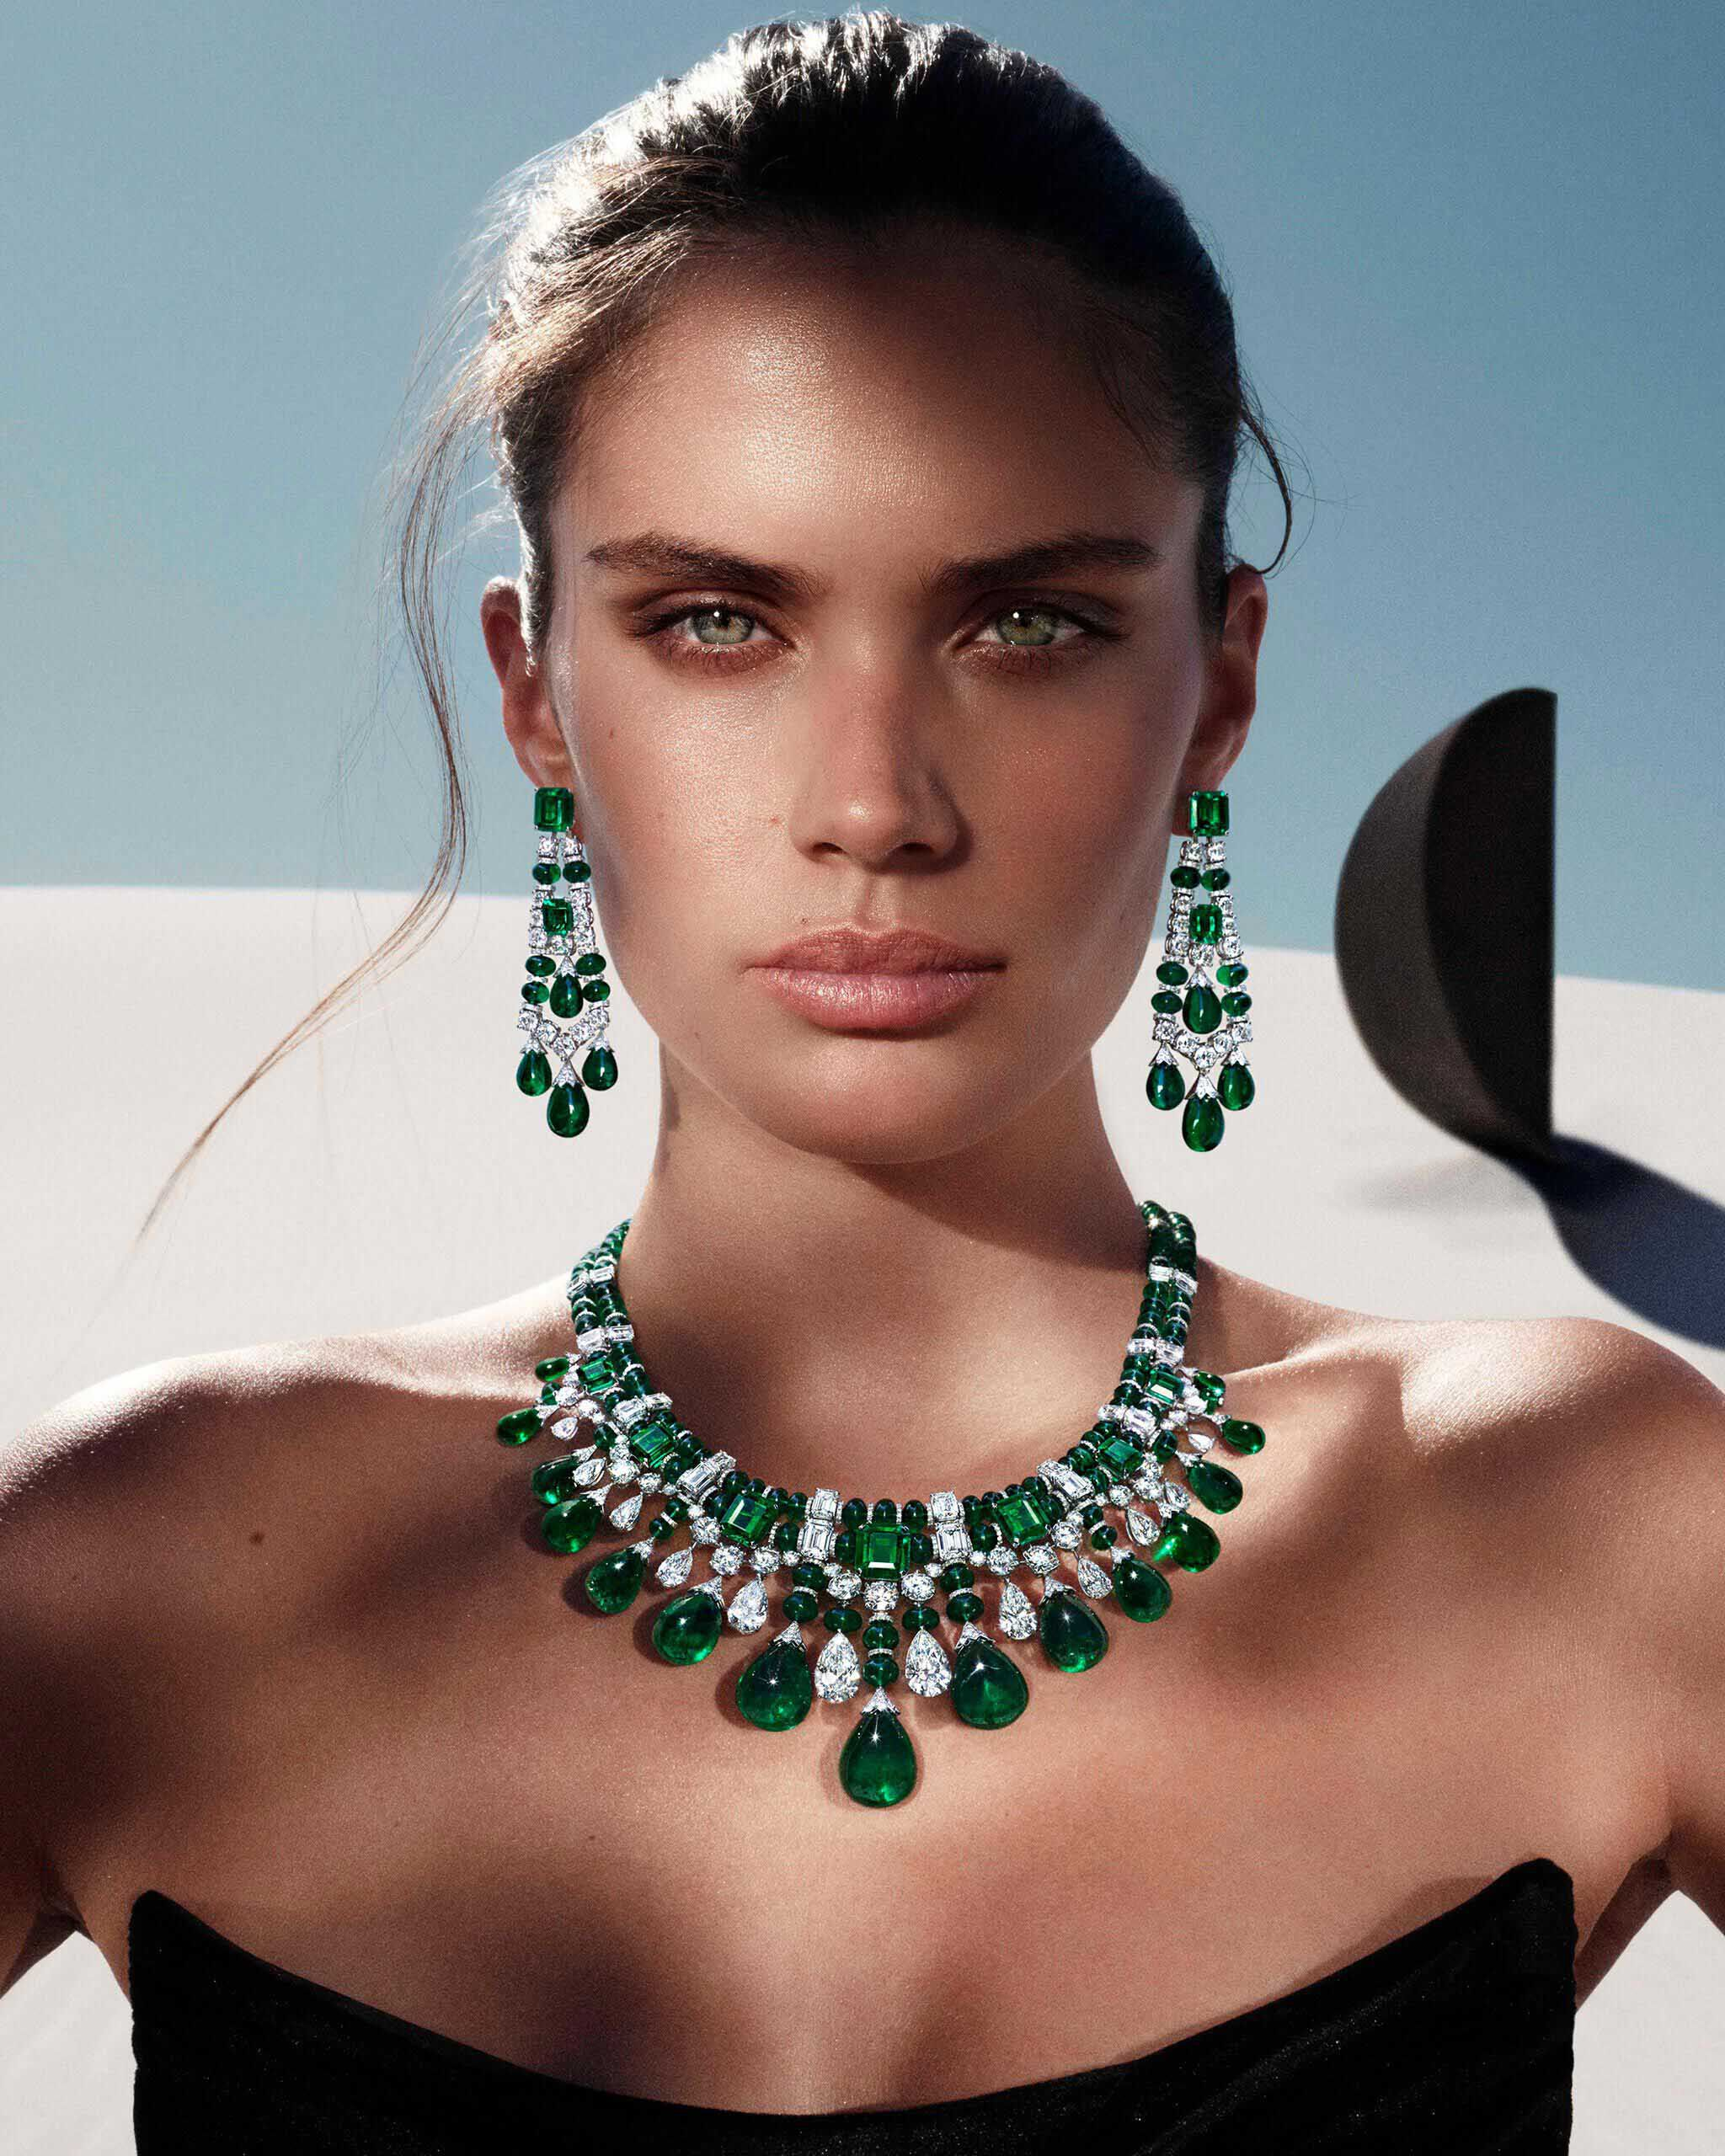 Model wears the Graff Tribal collection emerald and diamond diamond high jewellery earrings and necklace